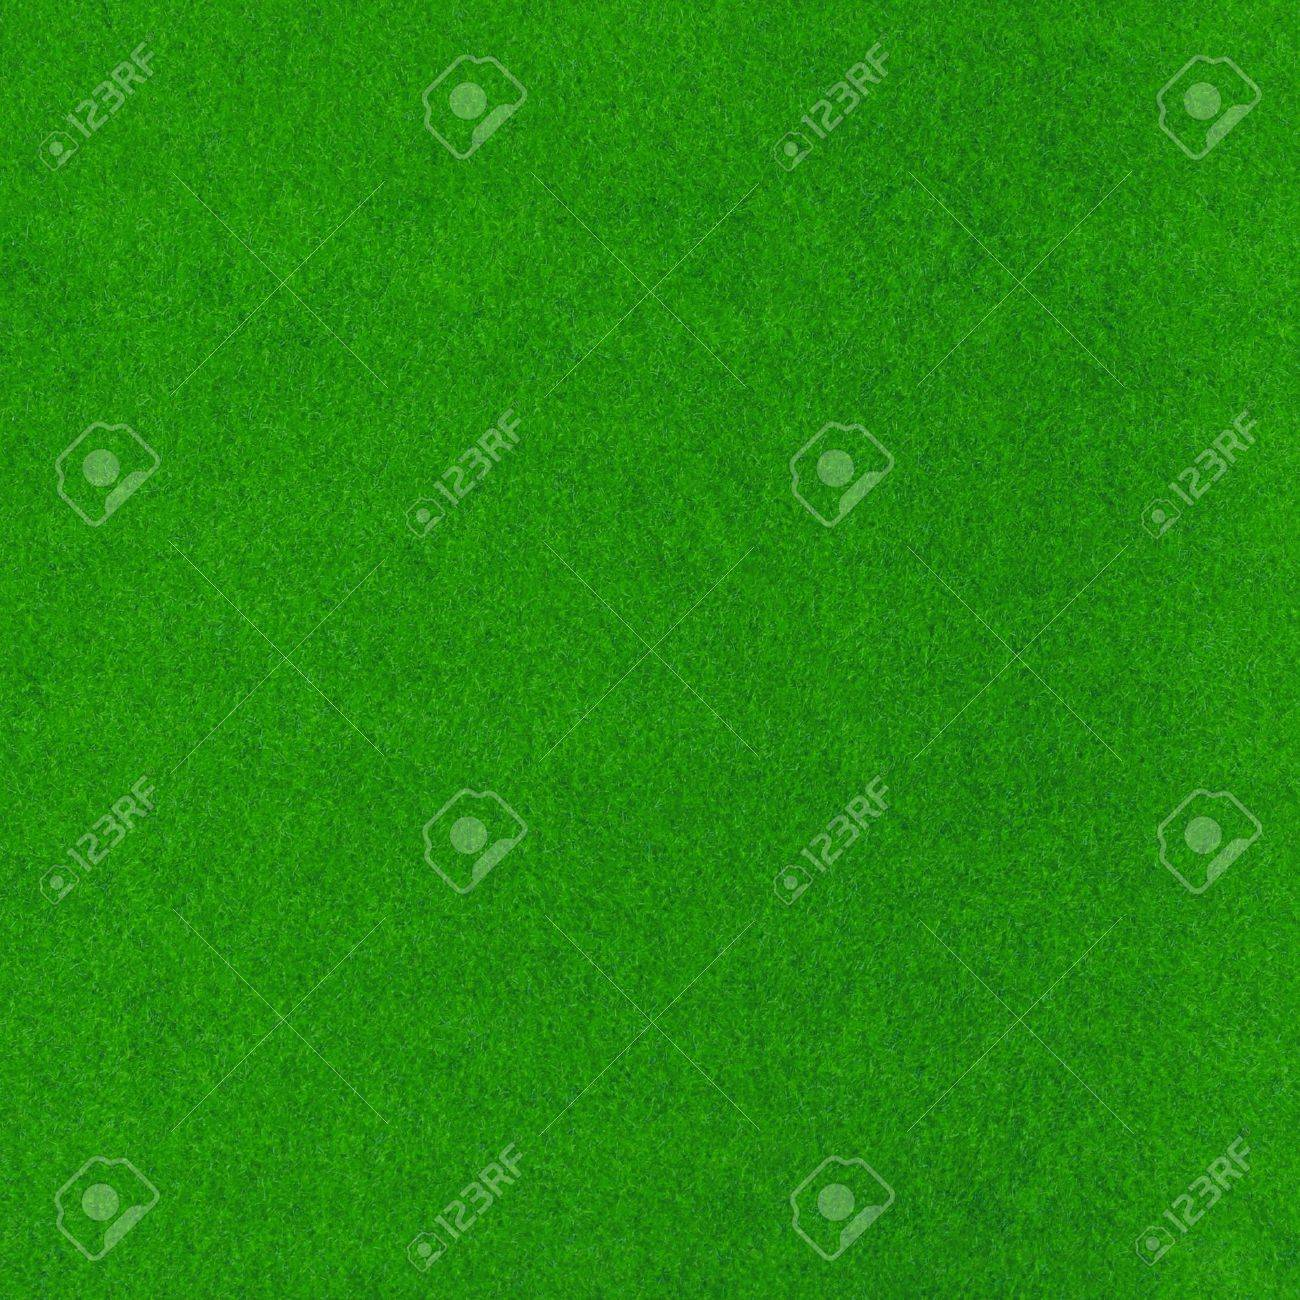 Abstract background with green texture, velvet fabric, full frame, close-up Standard-Bild - 15192513